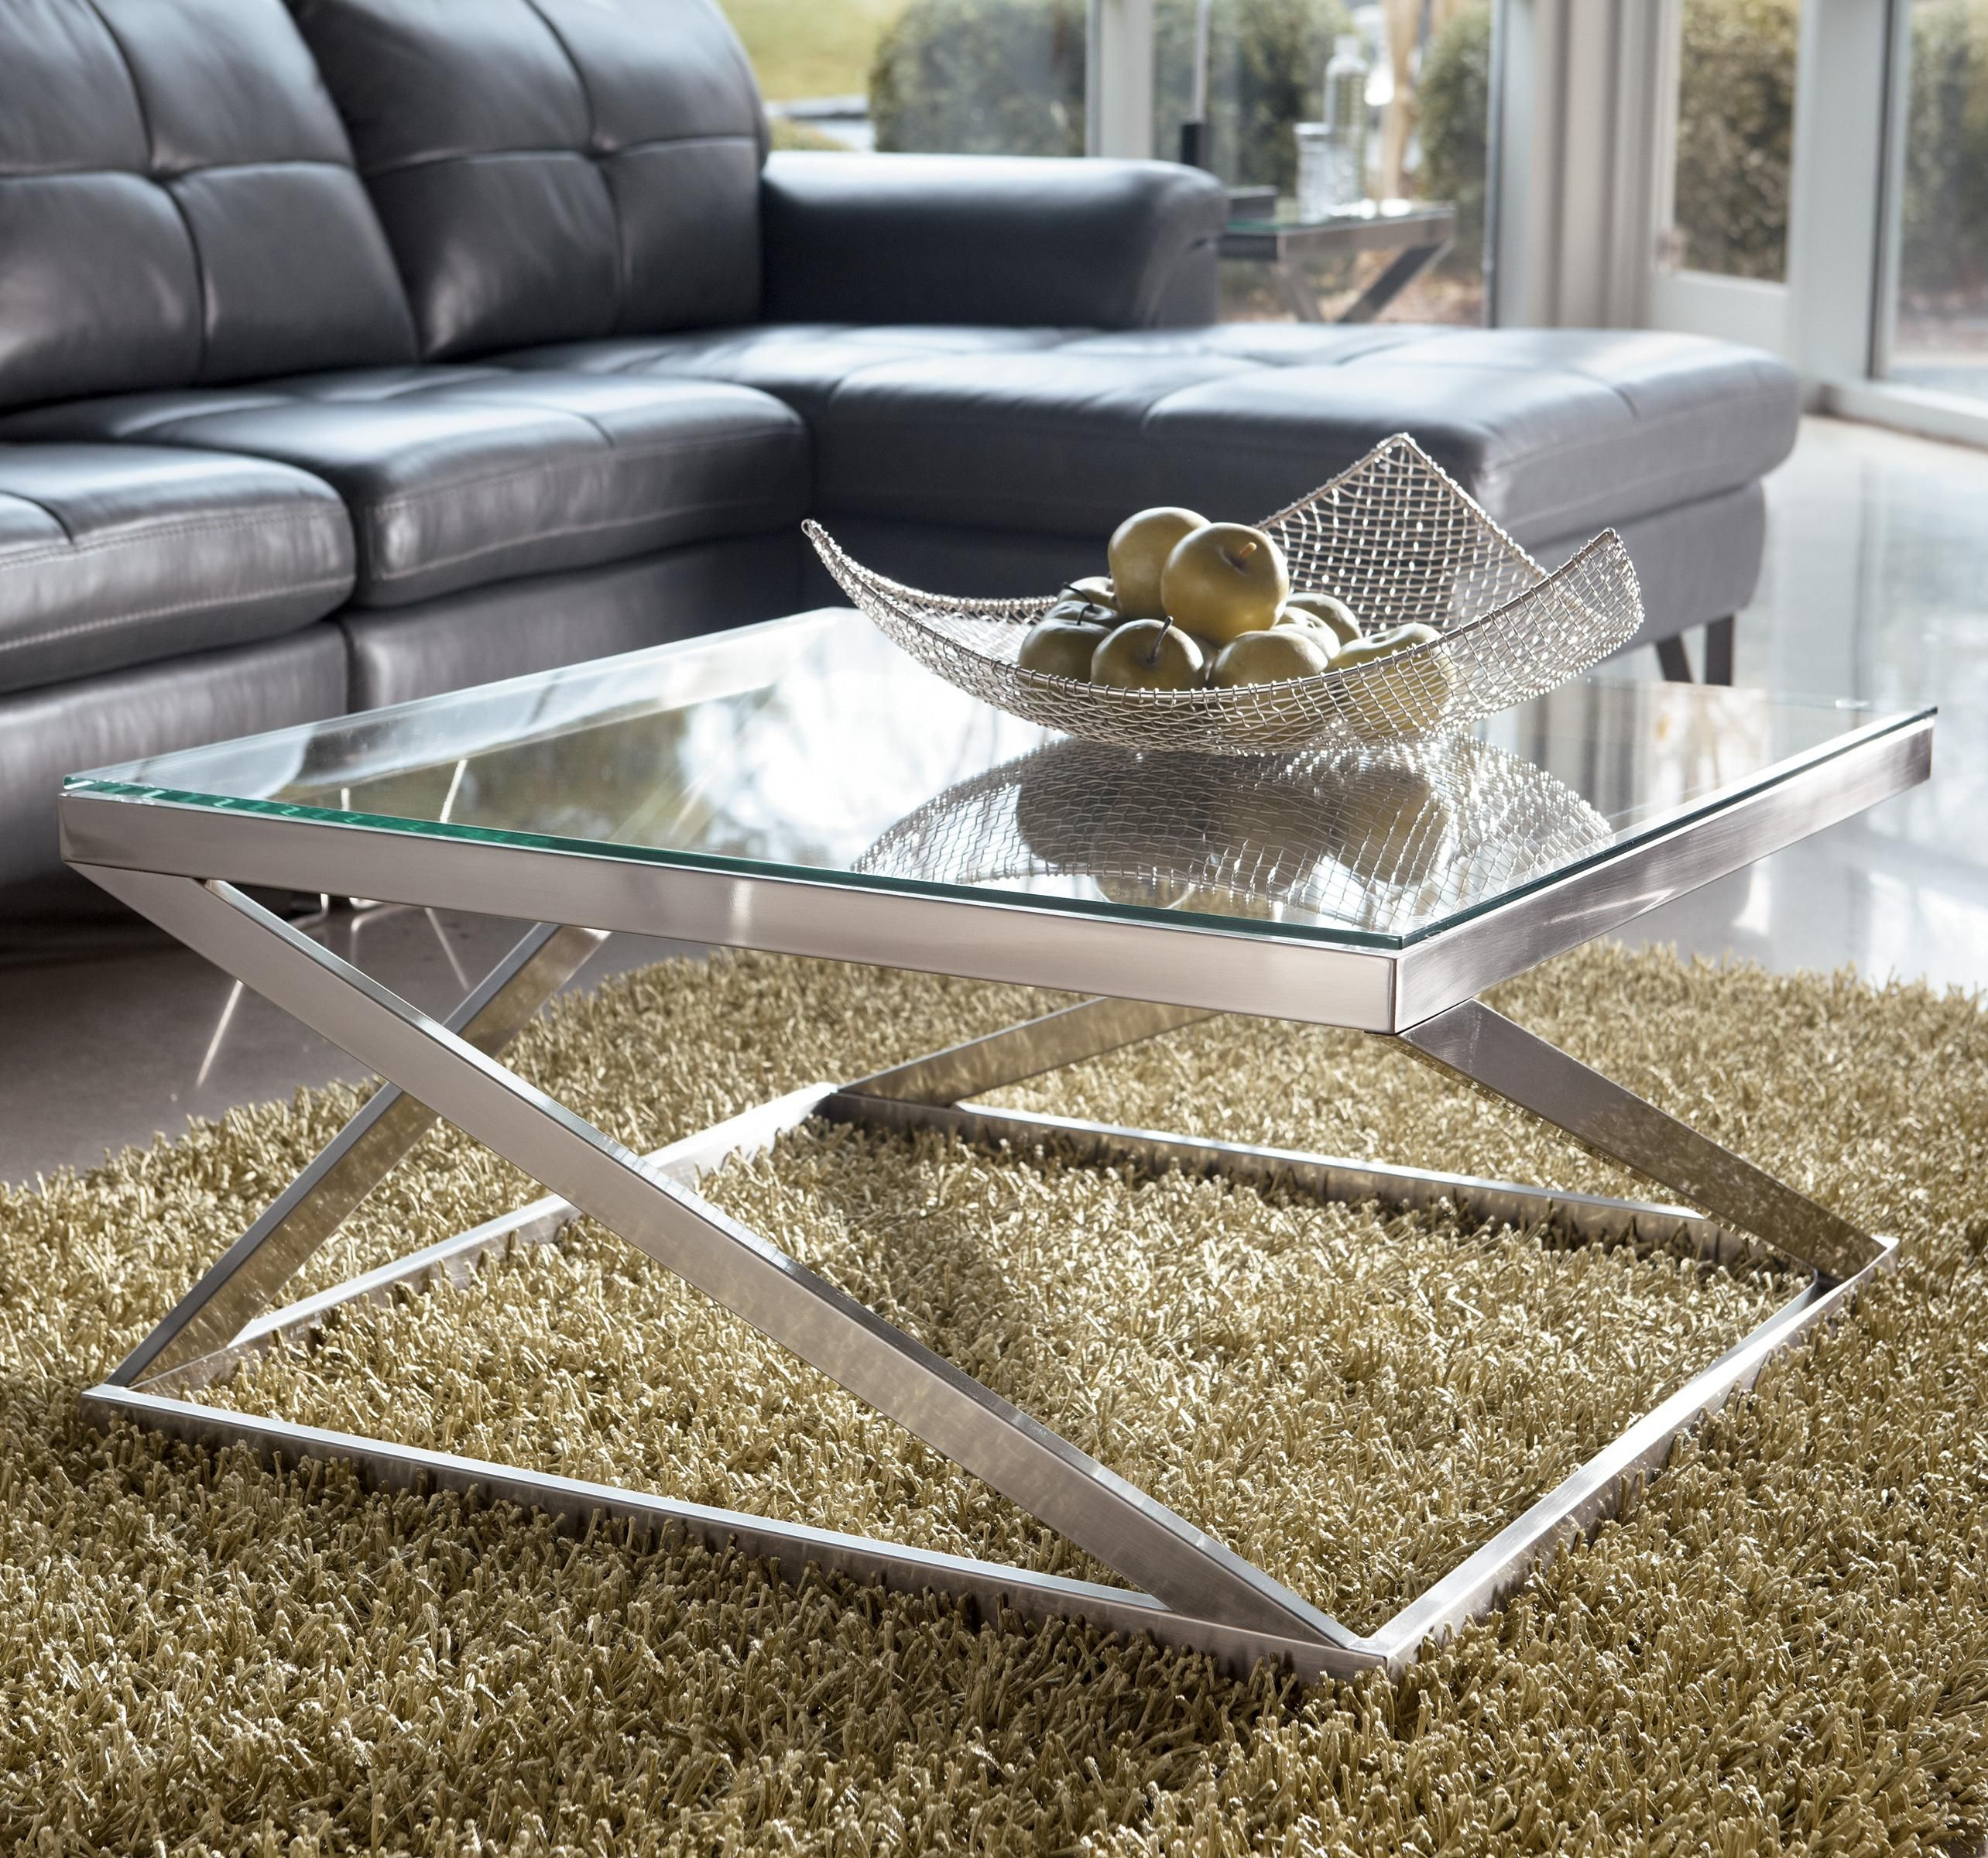 Coylin Brushed Metal Square Cocktail Table With Clear Tempered Glass Top At Belfort Furniture Coffee Table Square Square Cocktail Table Coffee Table [ 2400 x 2568 Pixel ]